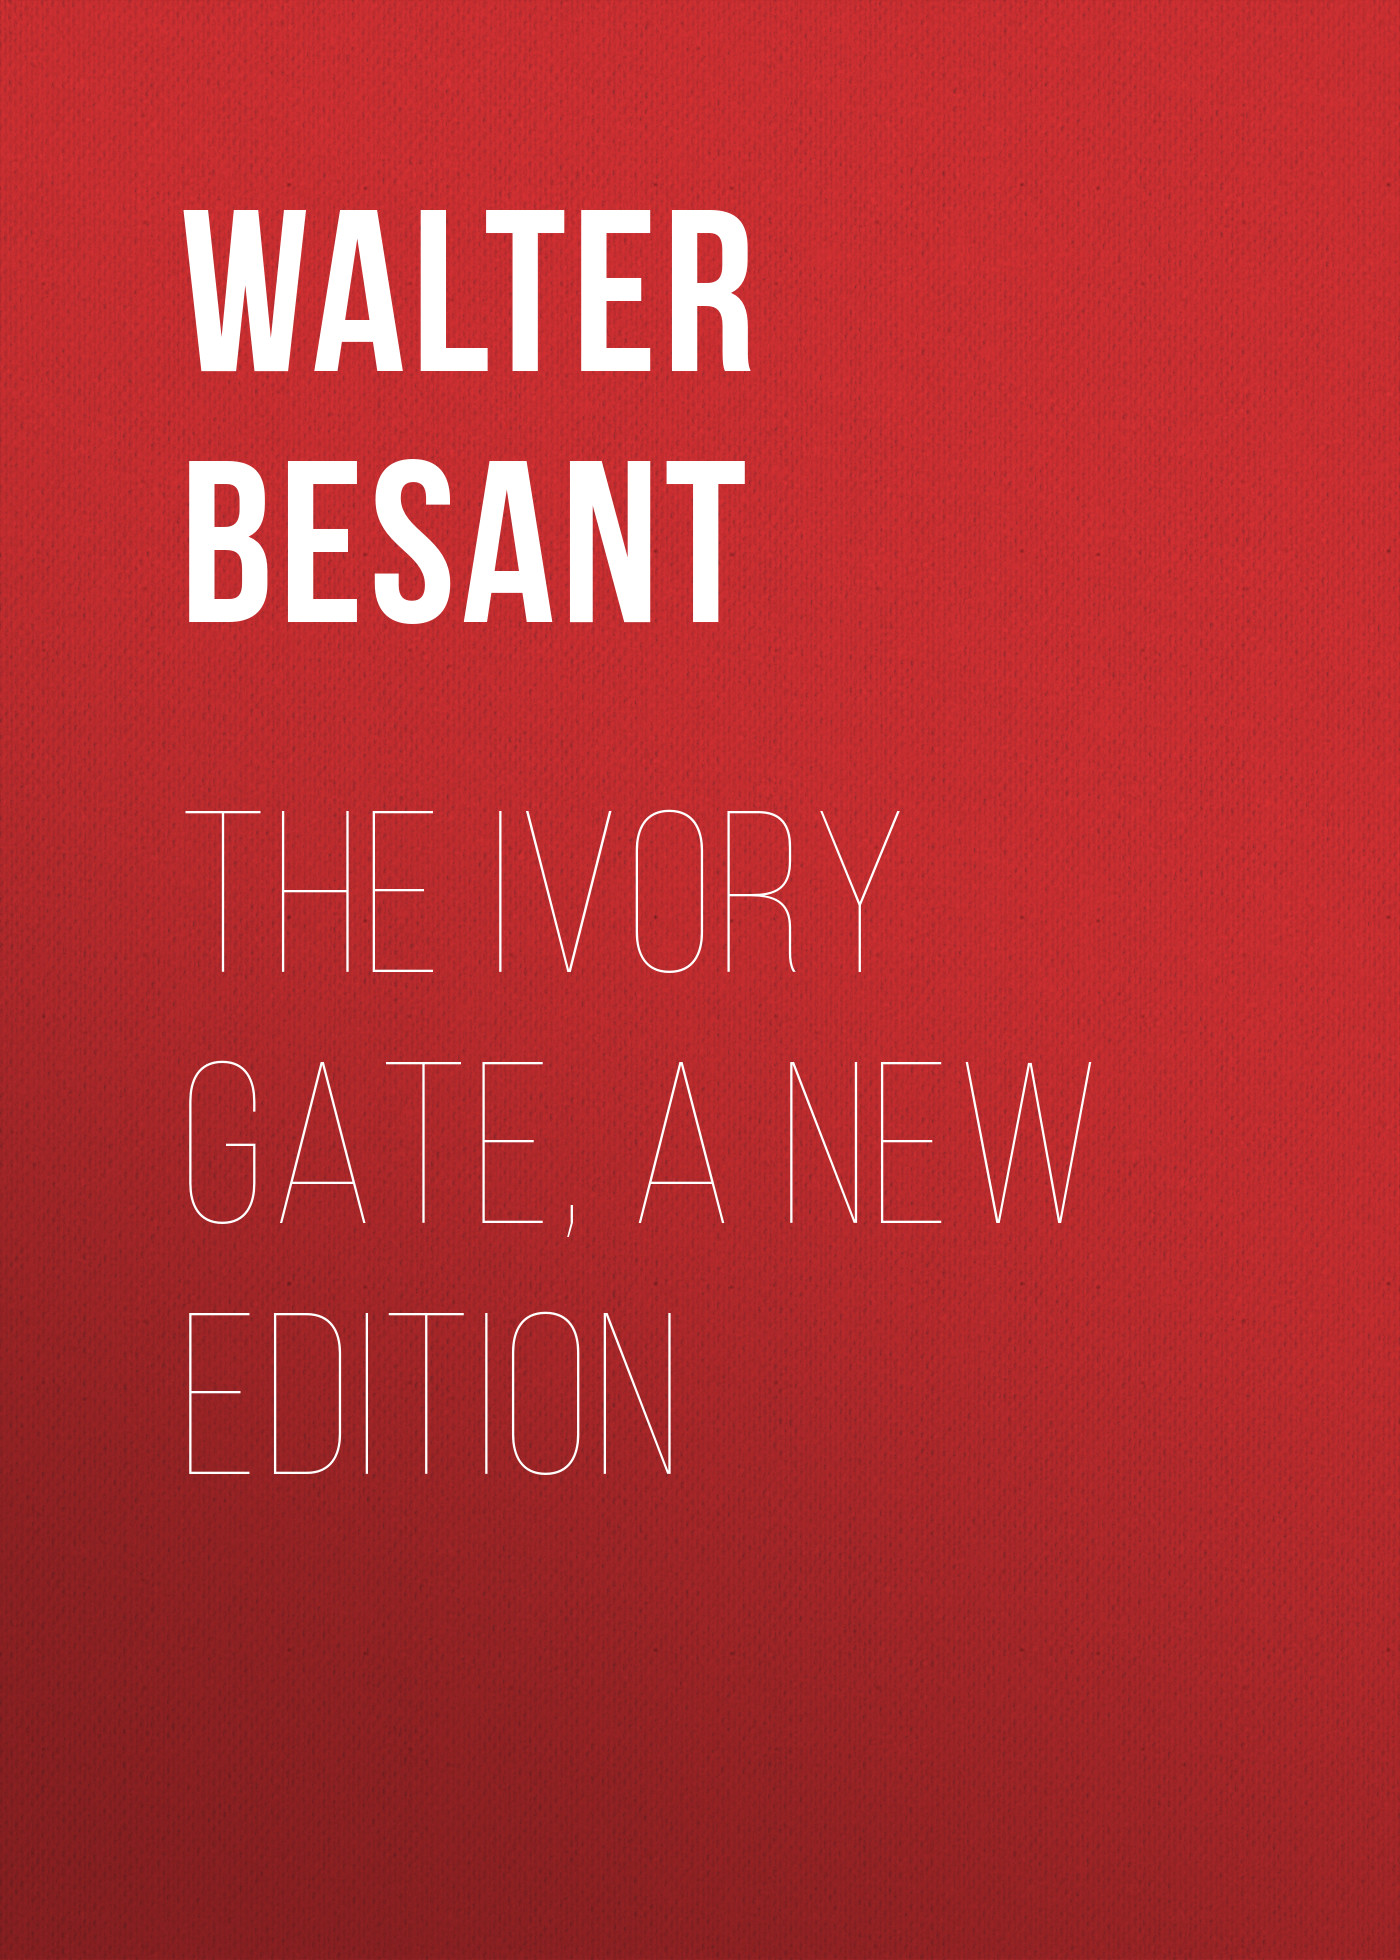 Walter Besant The Ivory Gate, a new edition walter besant for faith and freedom